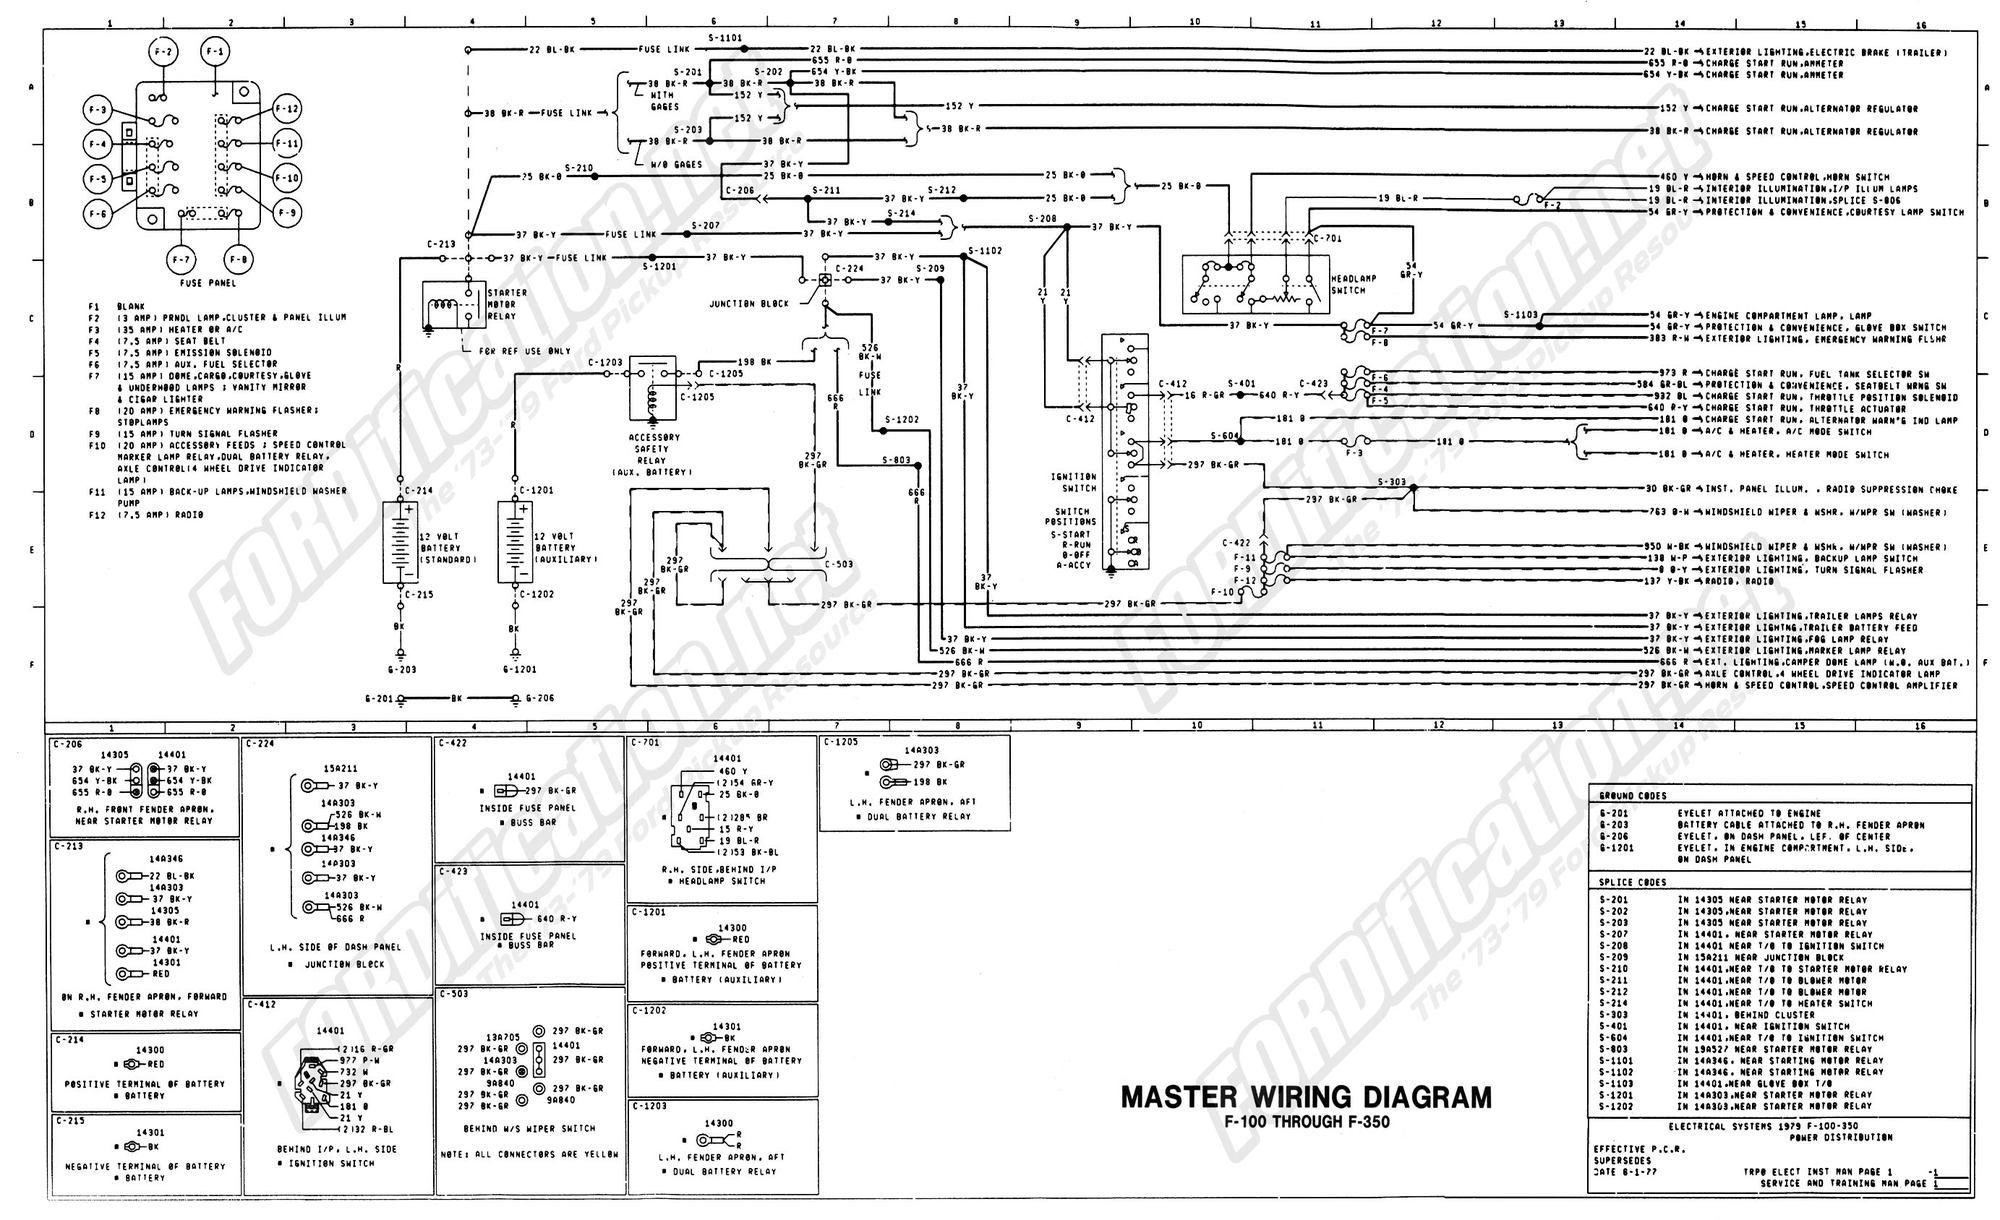 bard ac wiring diagram auto electrical wiring diagram